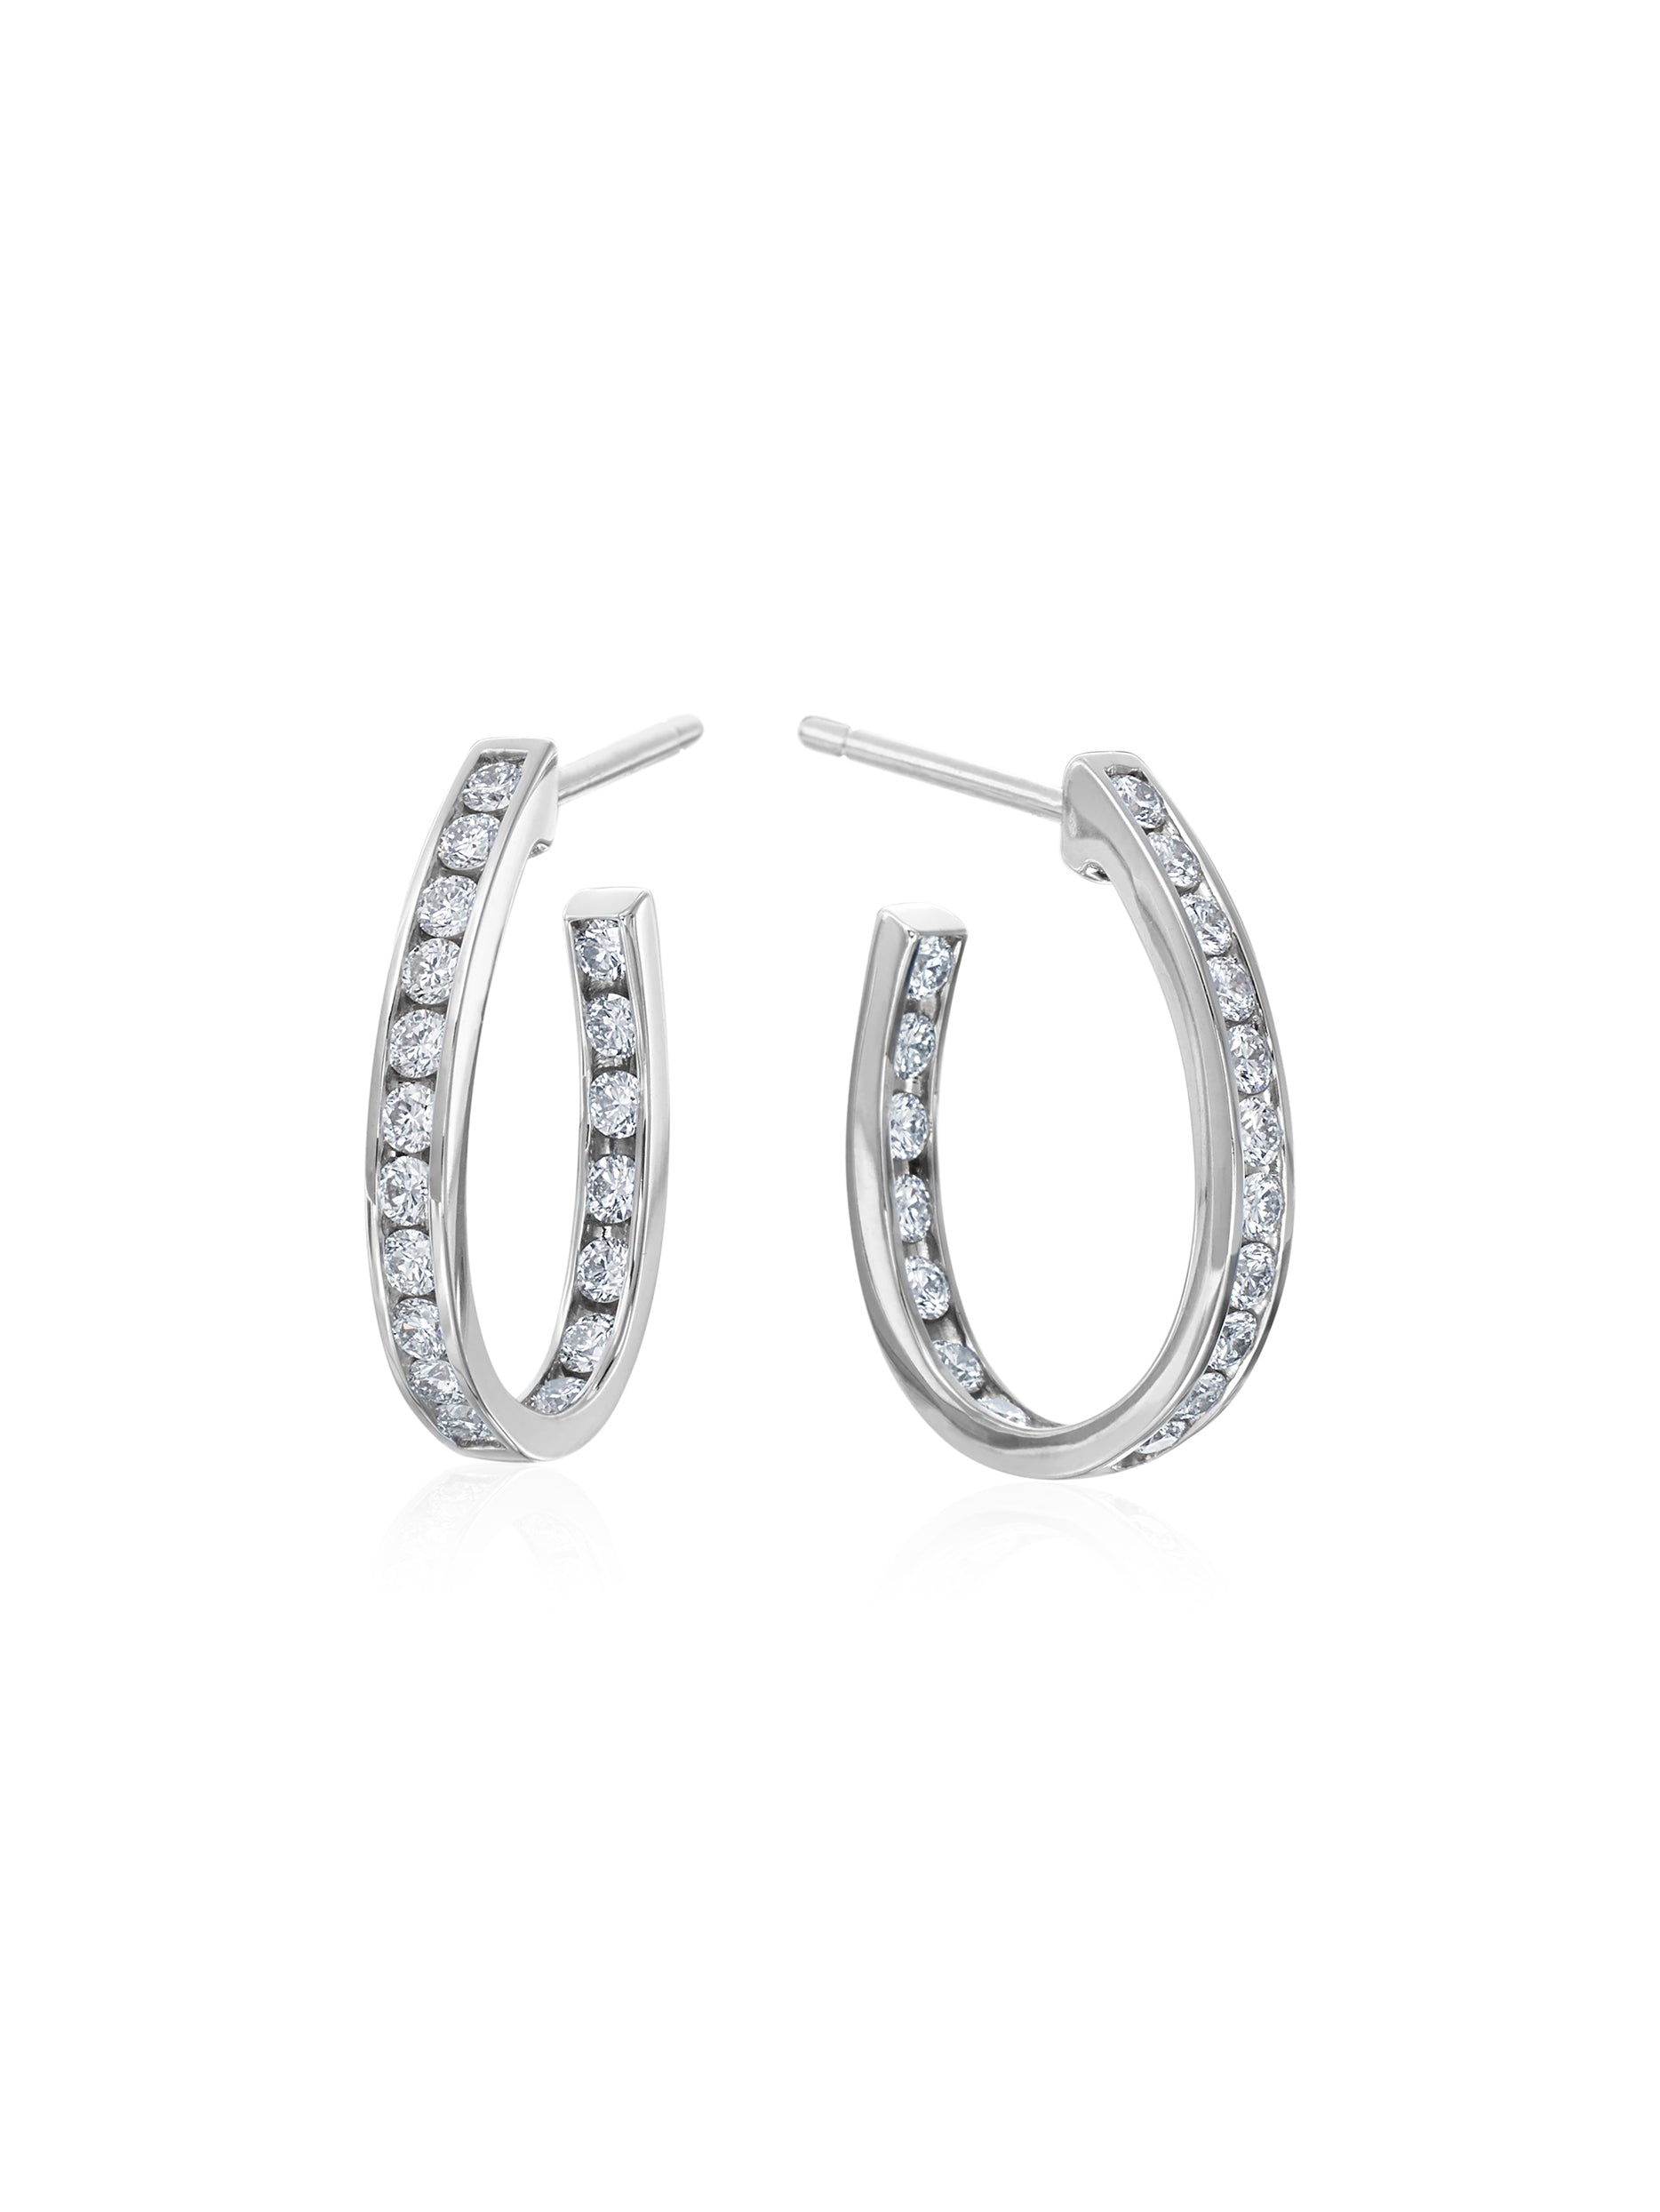 Channel Set Pear Shaped Diamond Hoops 3/4""